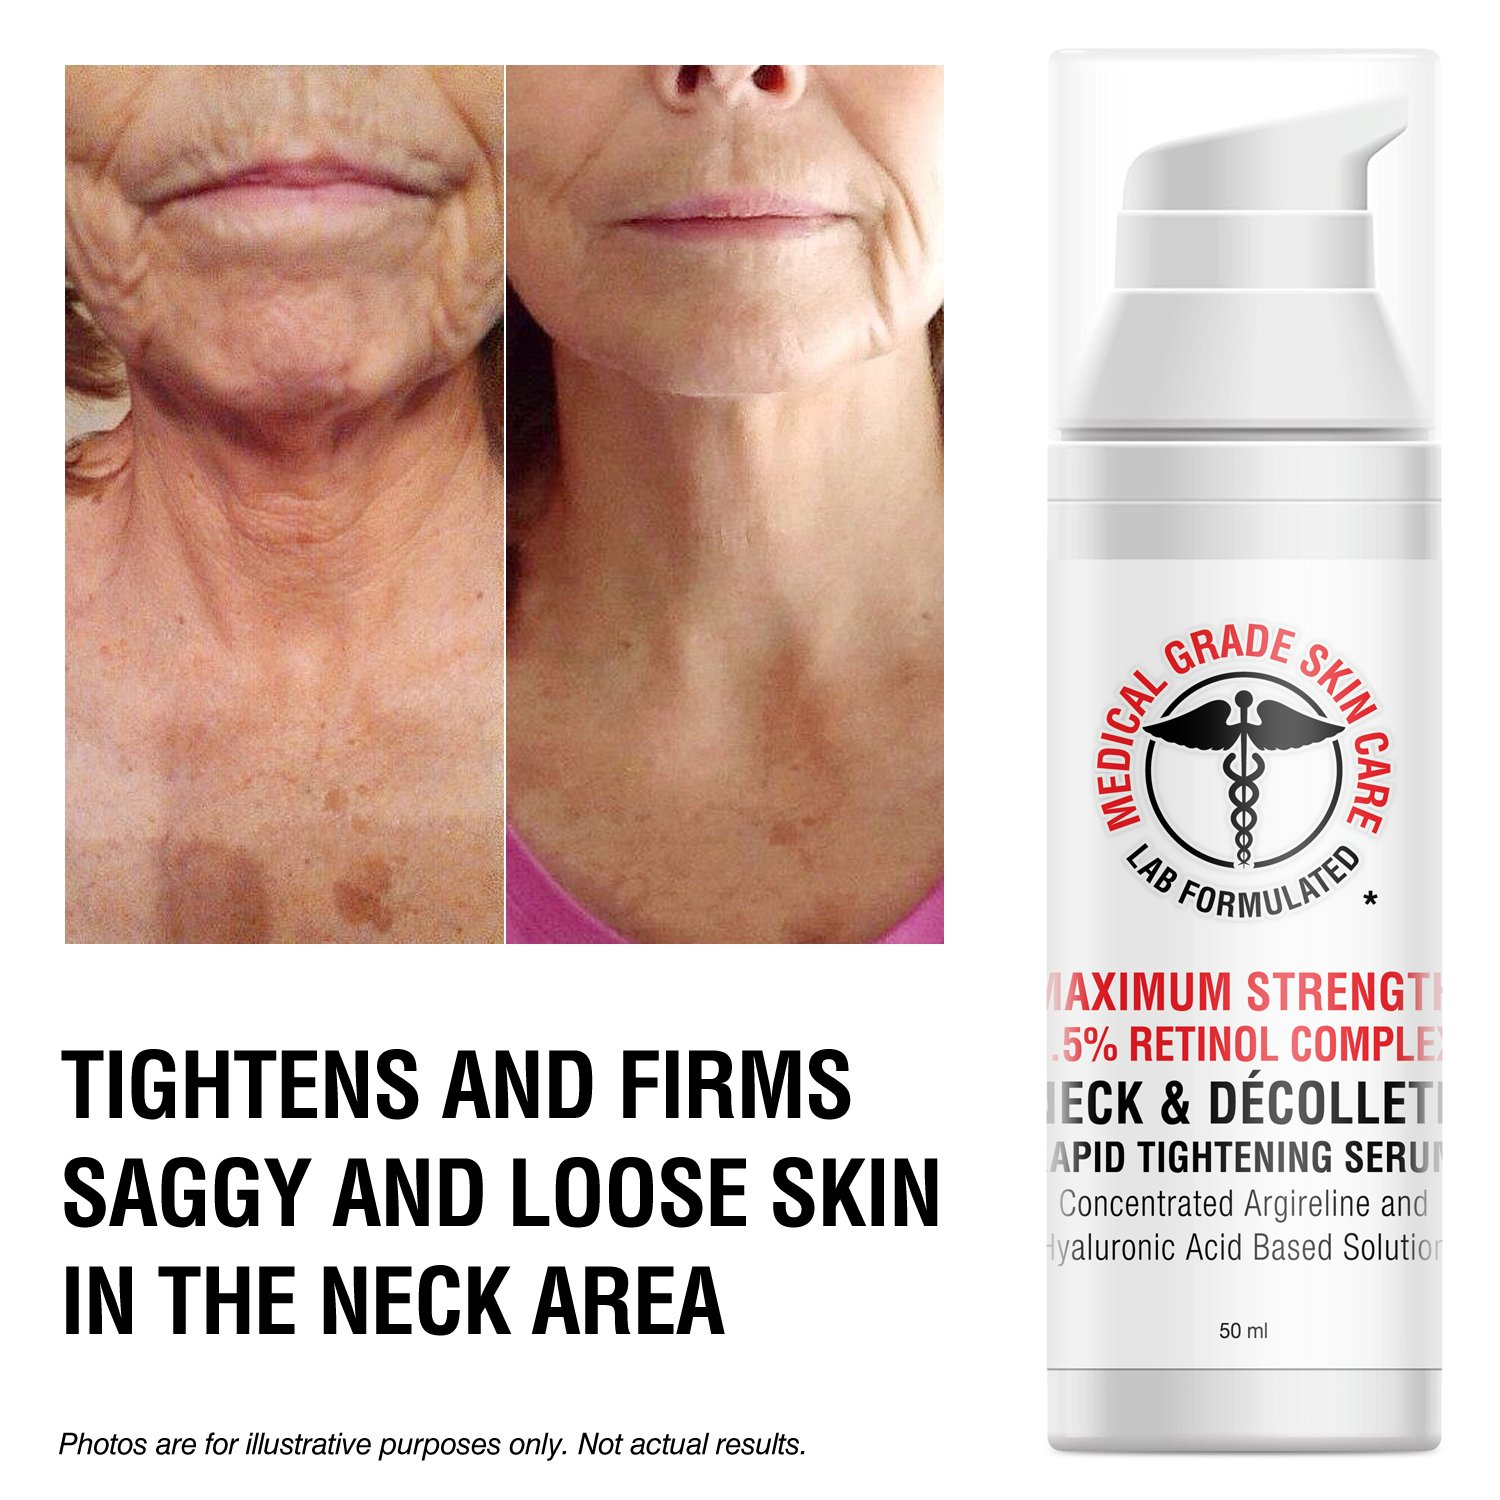 Neck & Décolleté Tightening Serum   Best Anti-Aging Firming Neck Cream Made With Maximum Strength 2.5% Retinol Complex   Concentrated With Argireline and Hyaluronic Acid by SkinPro (Image #2)